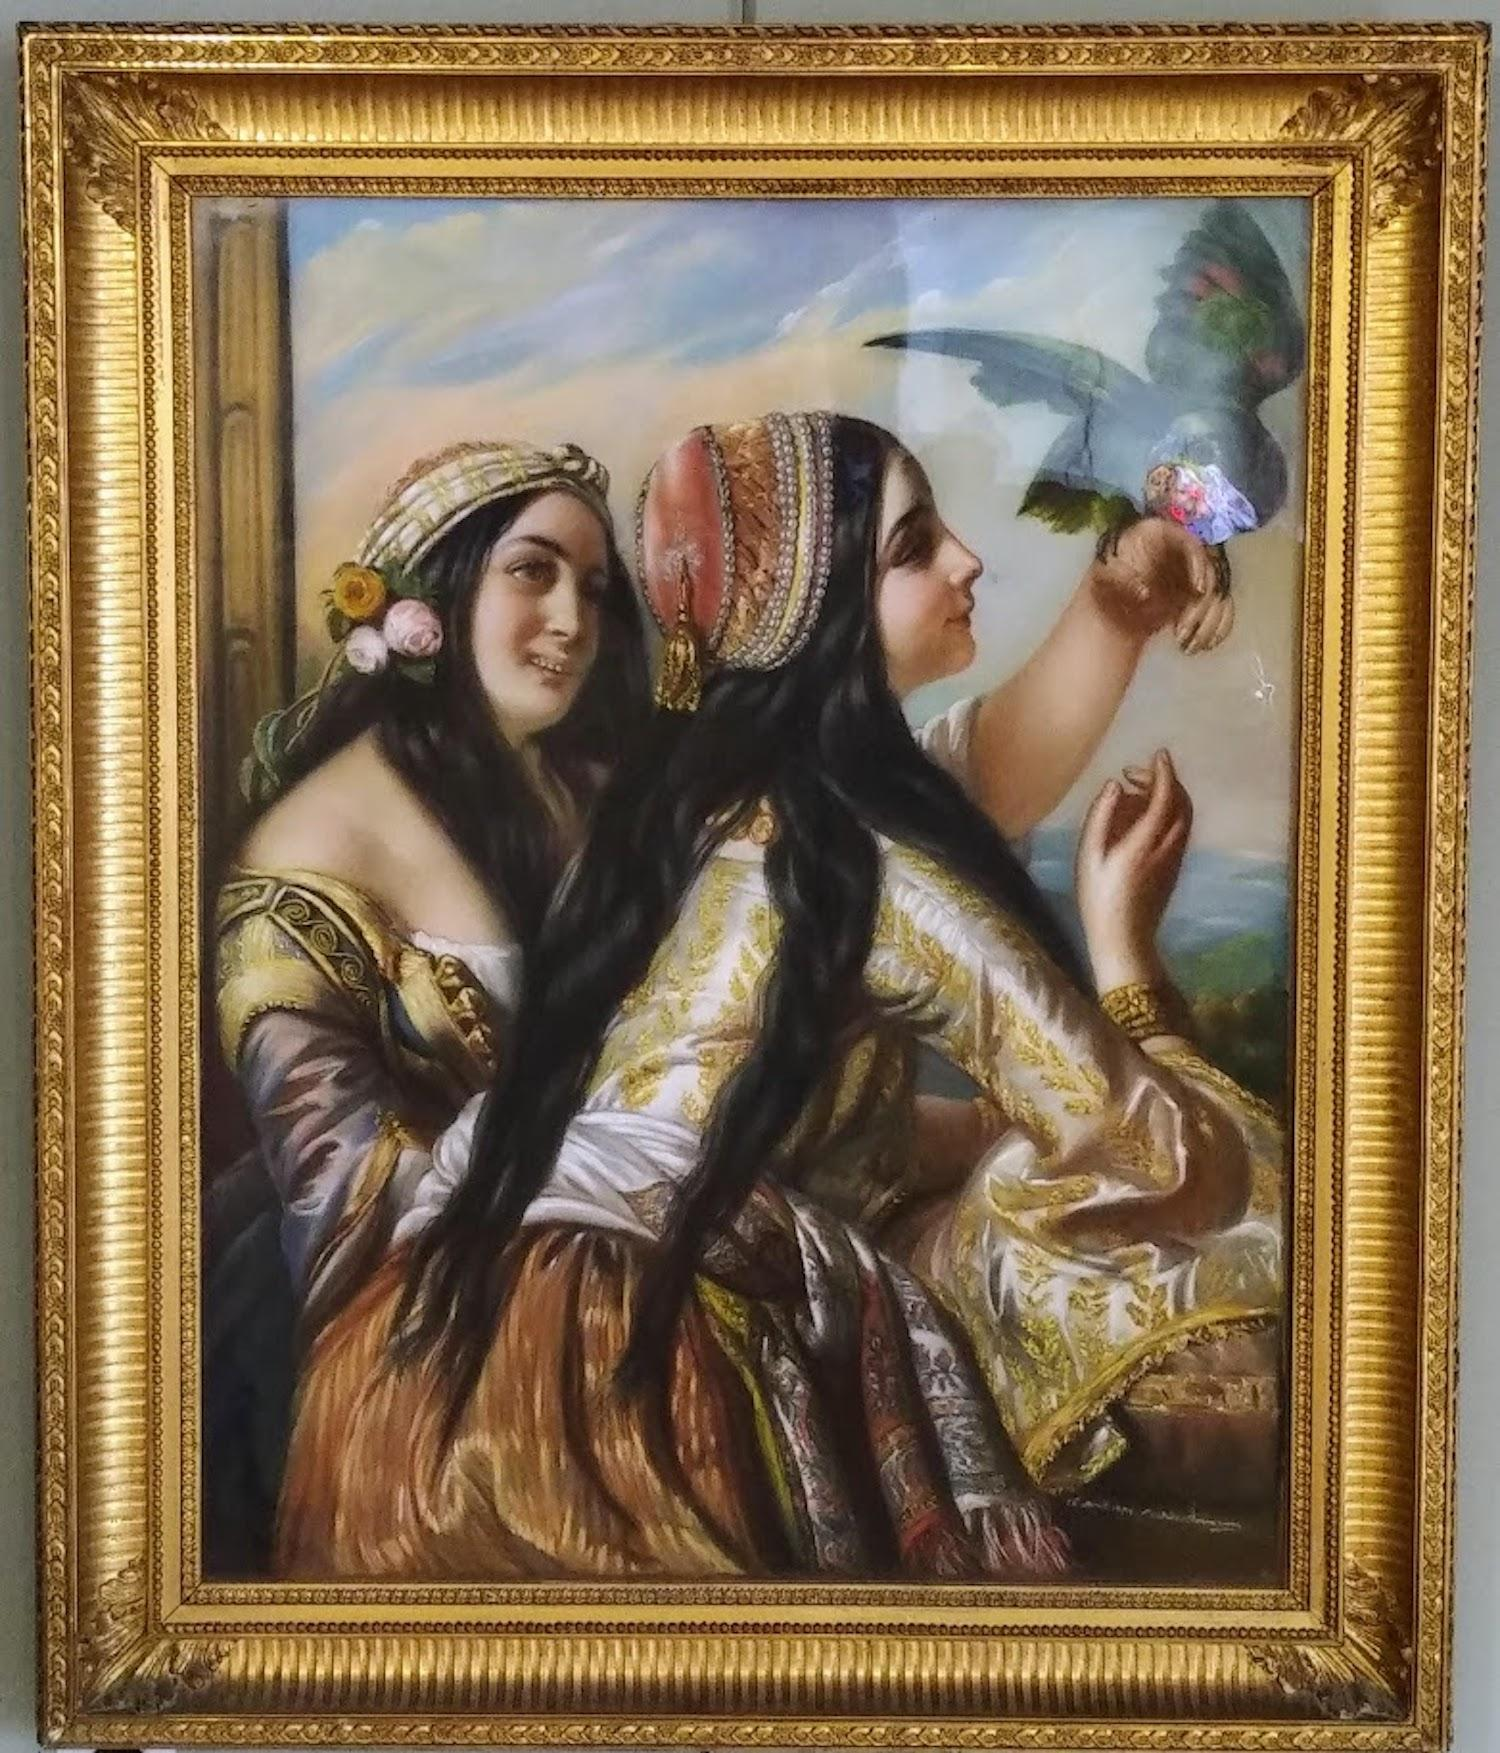 Orientalist women playing with a Green Parot, French, XIXst century circa 1870